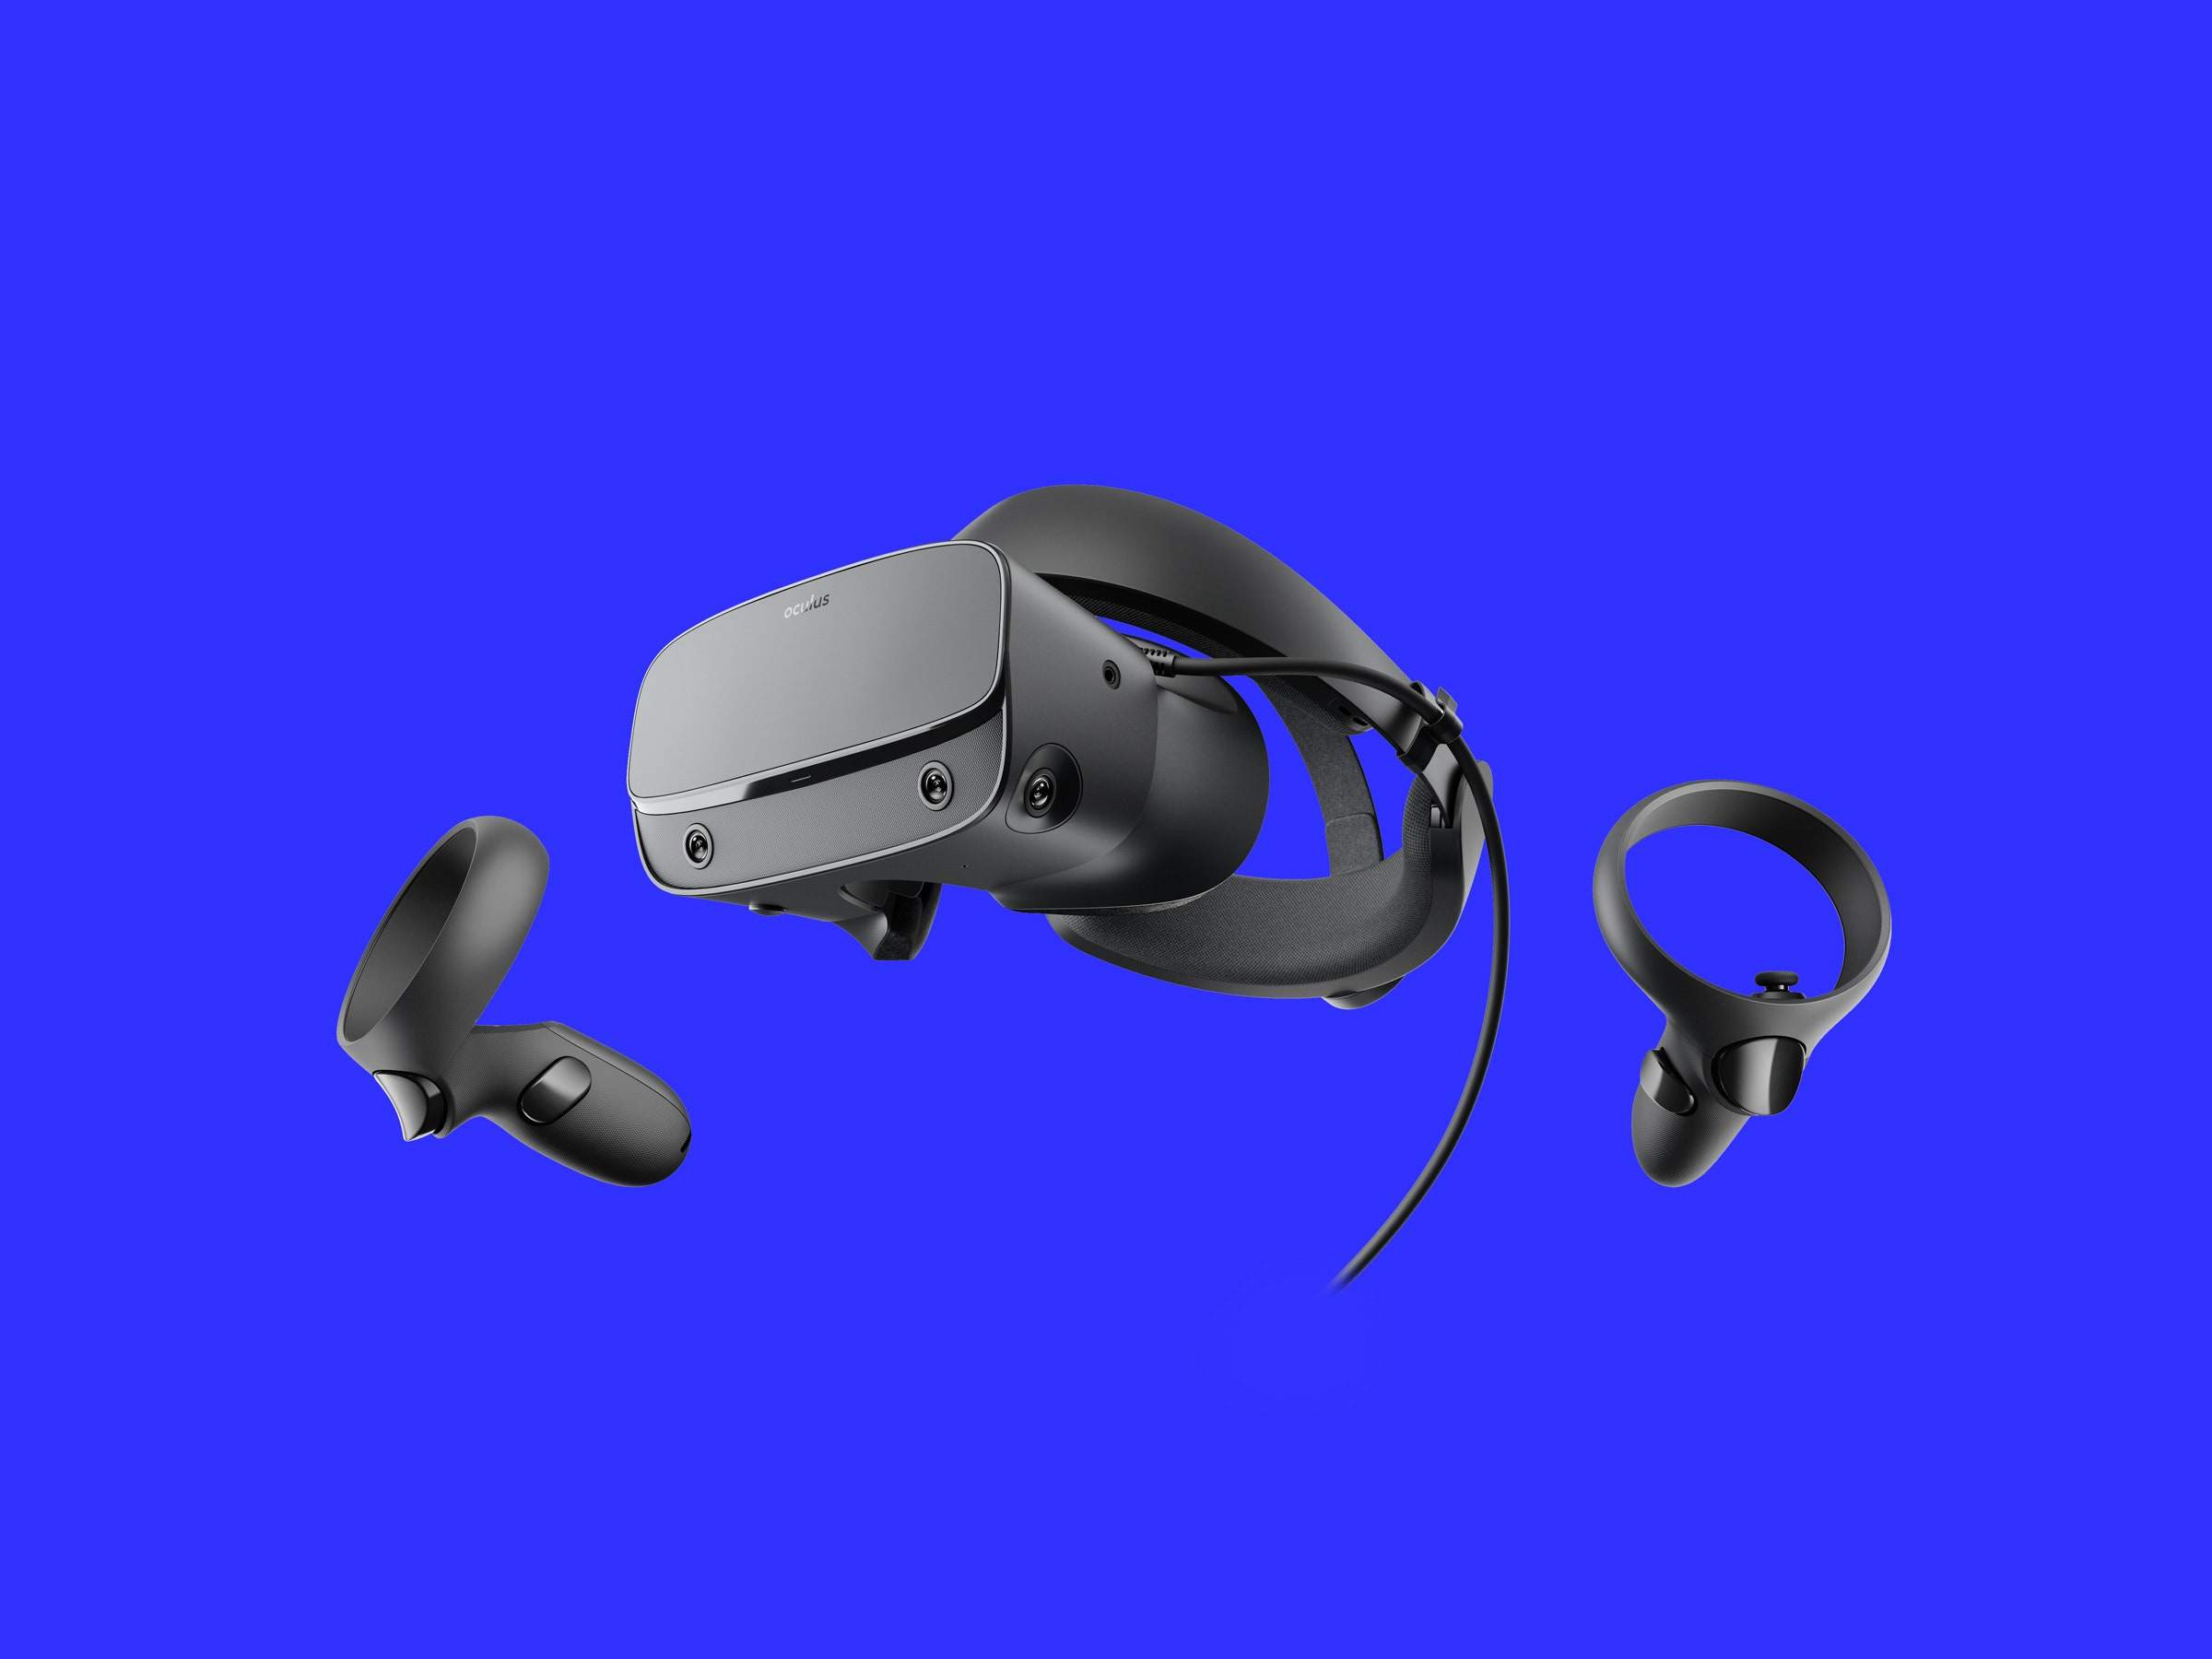 The Oculus Rift could be the future of VR Gaming